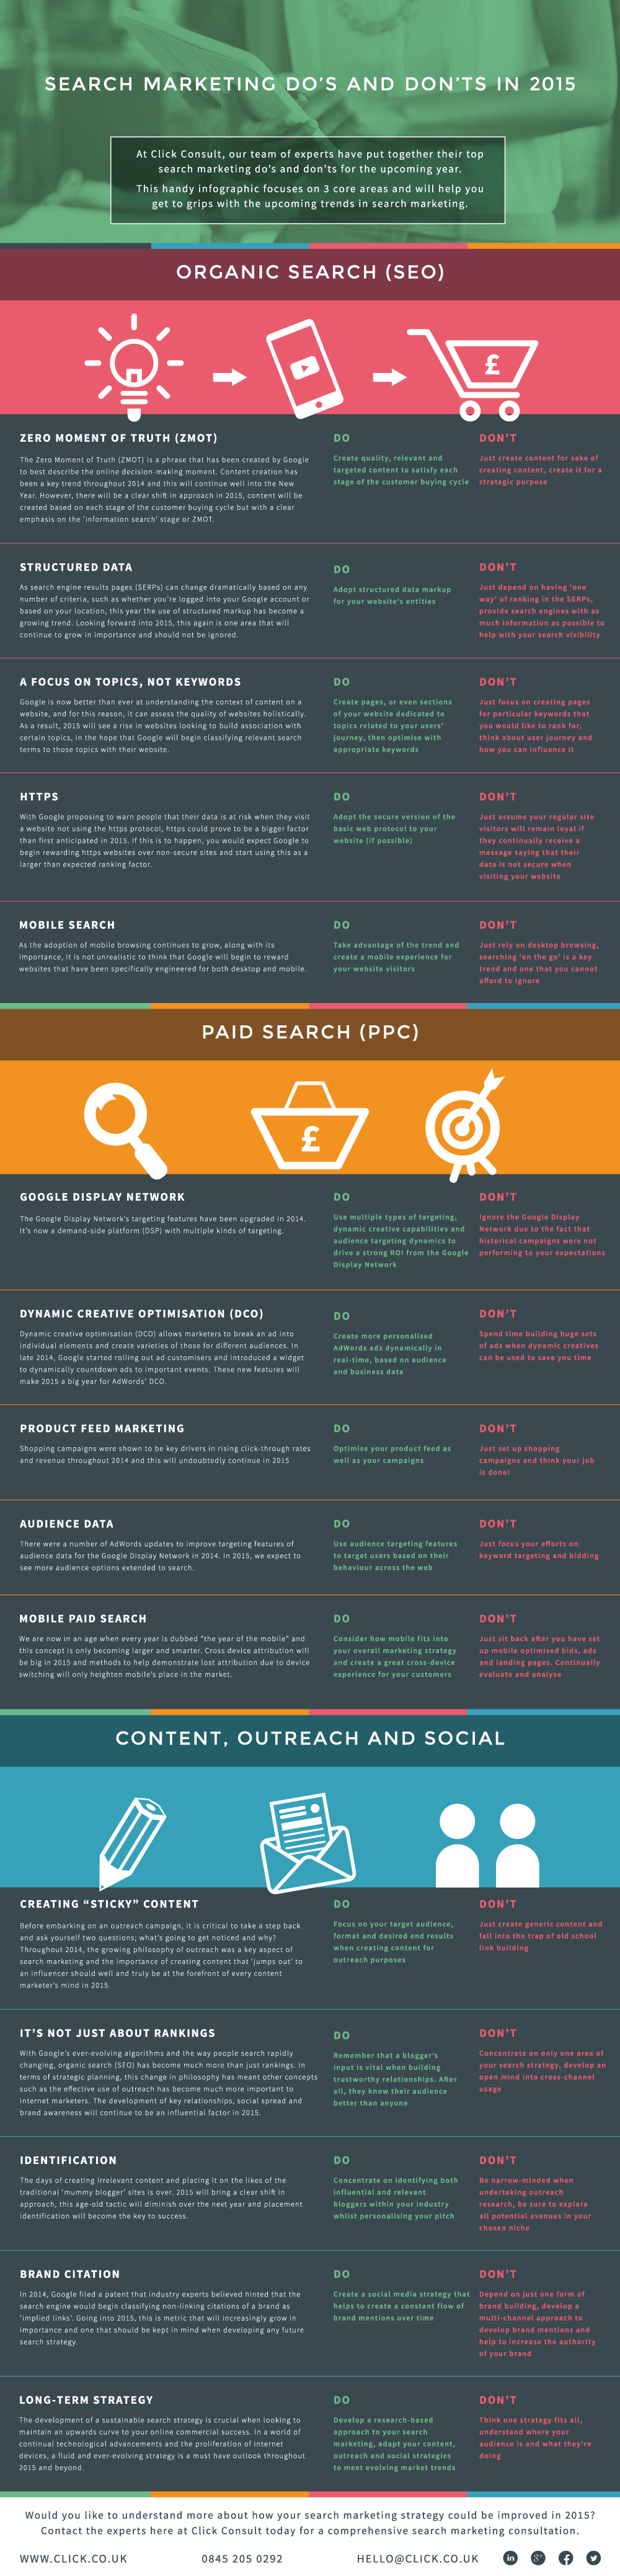 Search-Marketing-dos-and-donts-in-2015 (7)